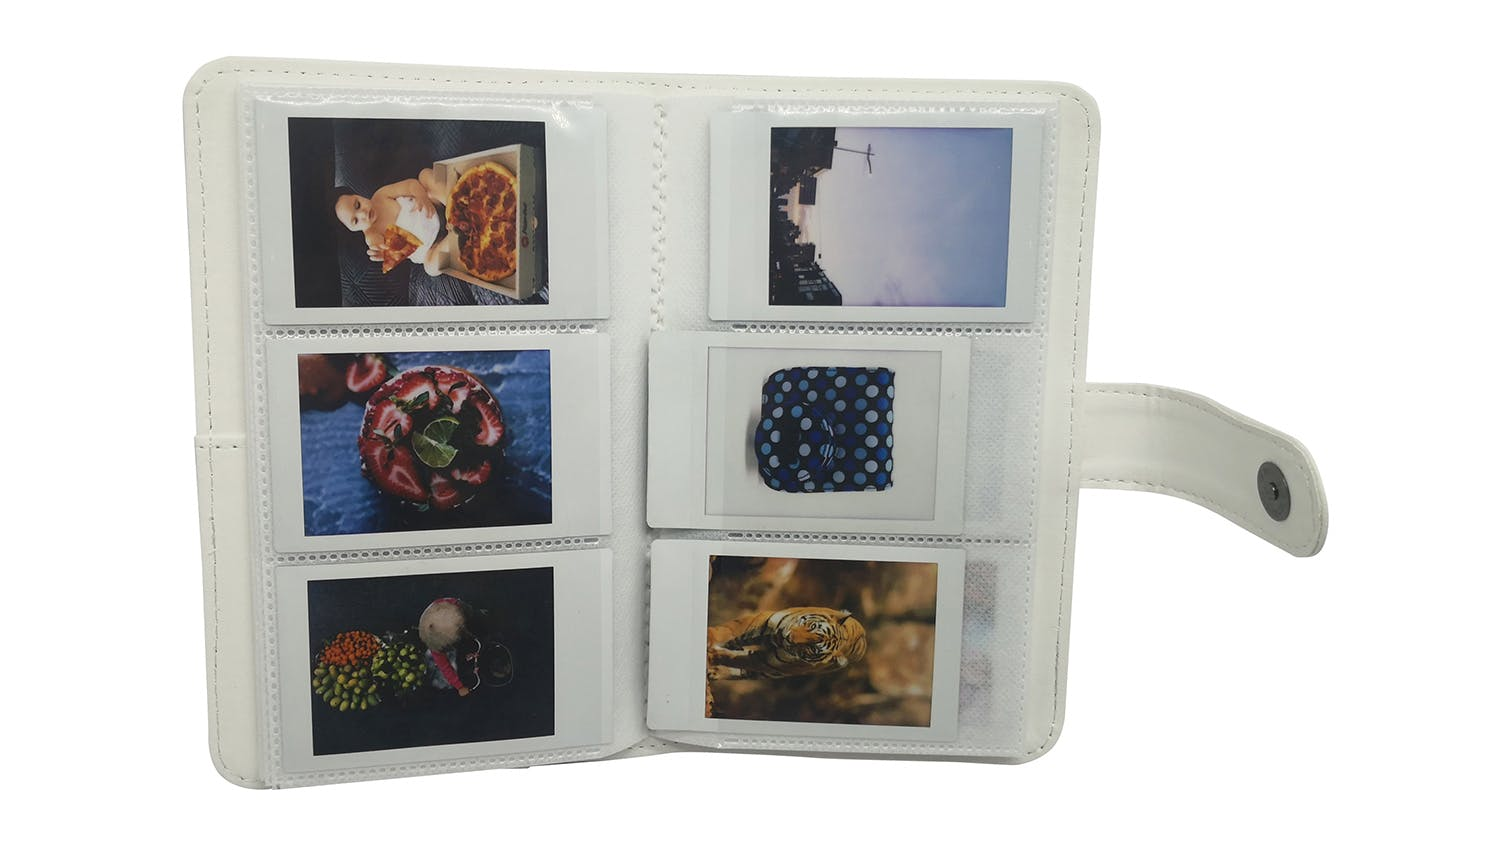 Instax Mini 11 Album - White Stripe